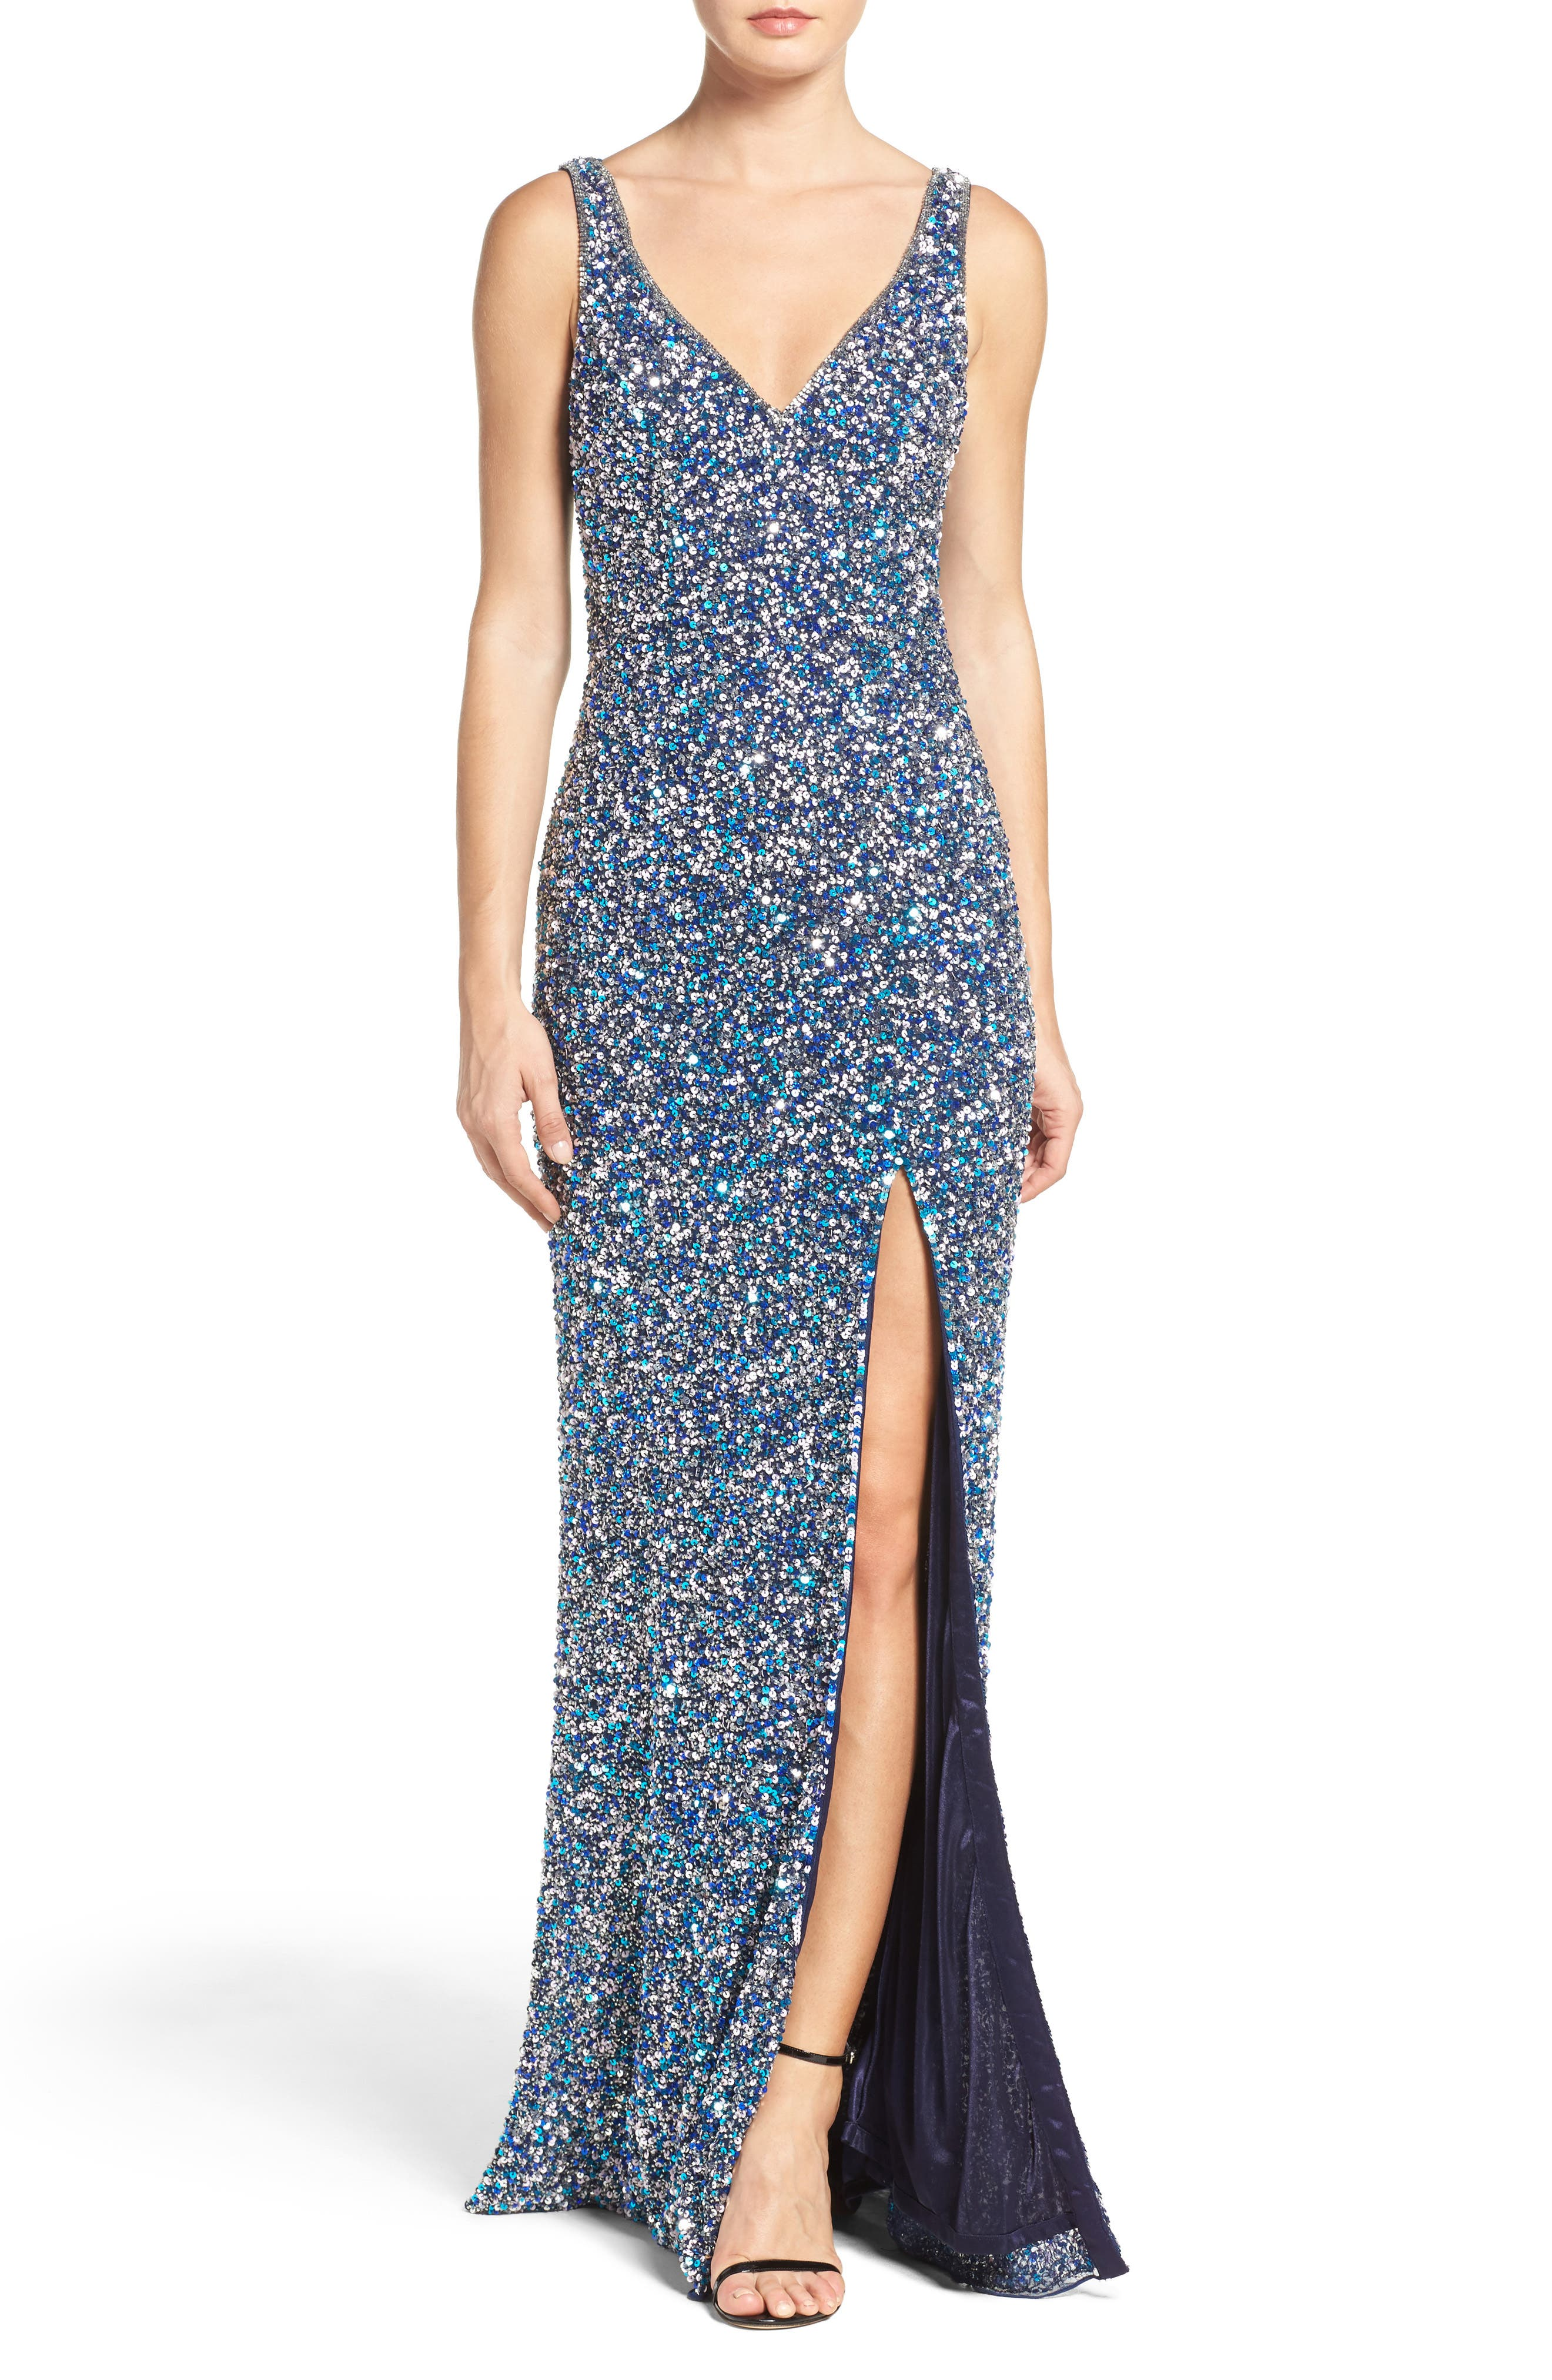 MAC DUGGAL, Sequin Slit Gown, Main thumbnail 1, color, NAVY MULTI